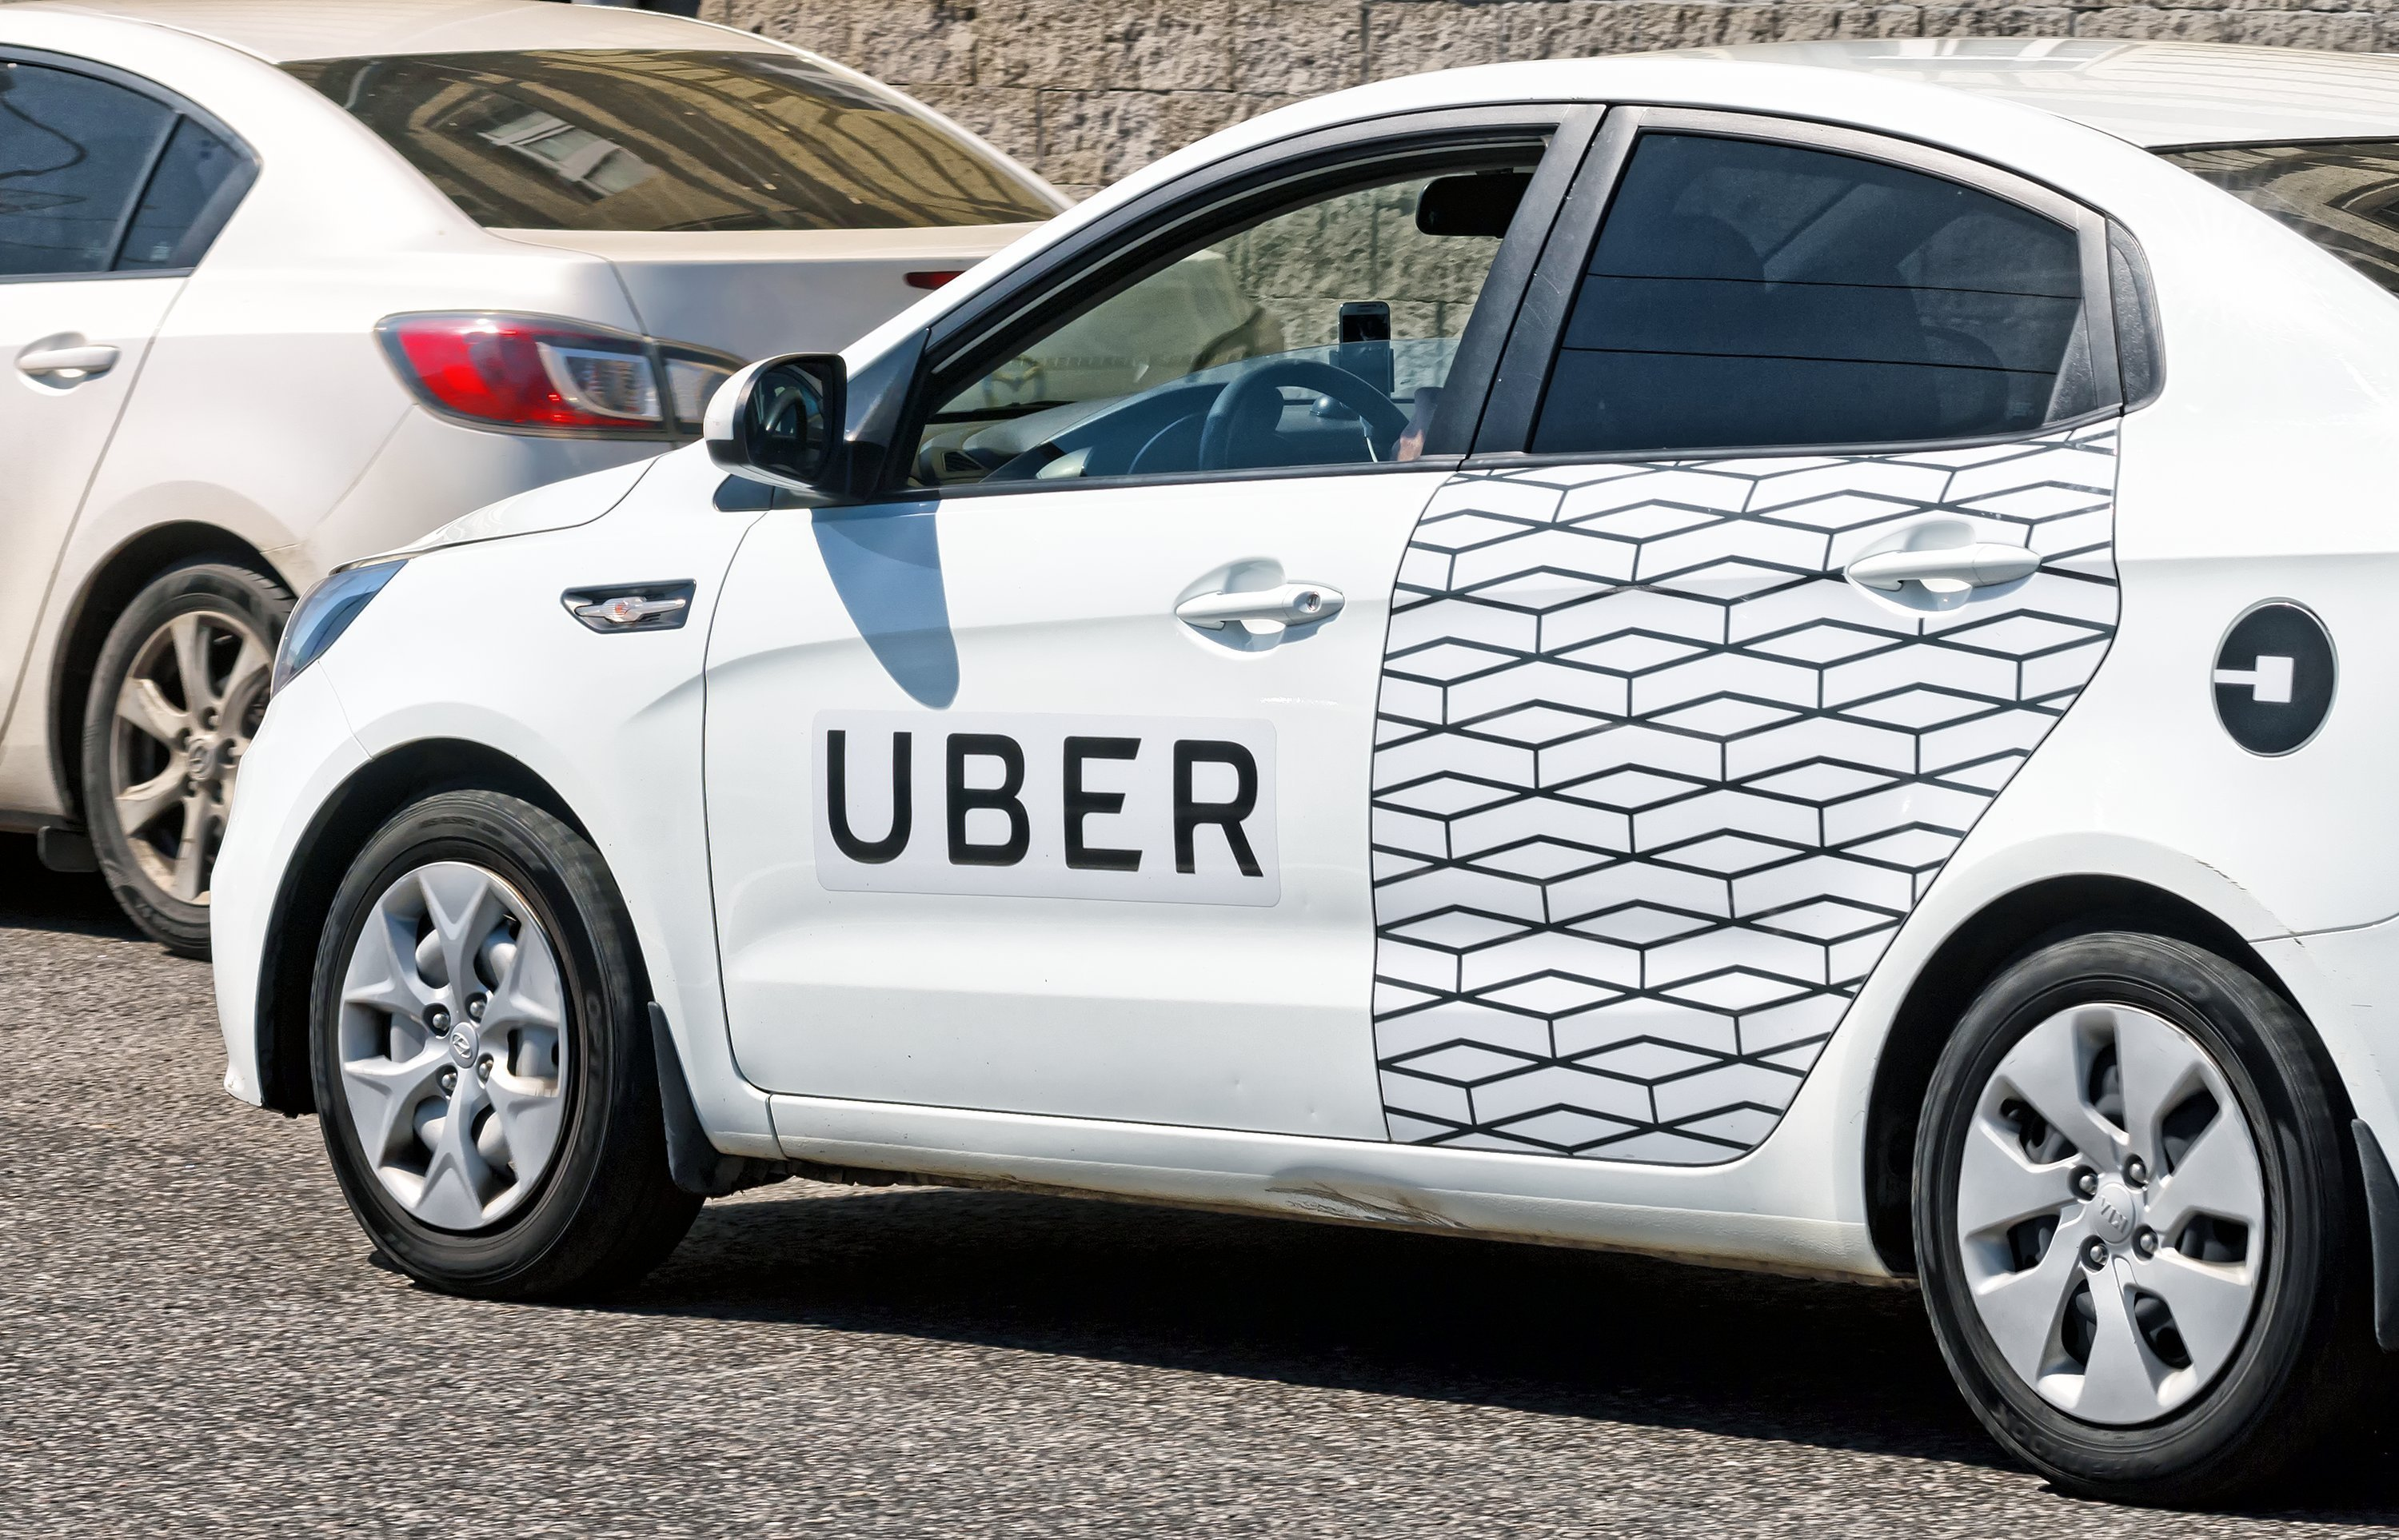 White car with Uber decals. | Source: Shutterstock